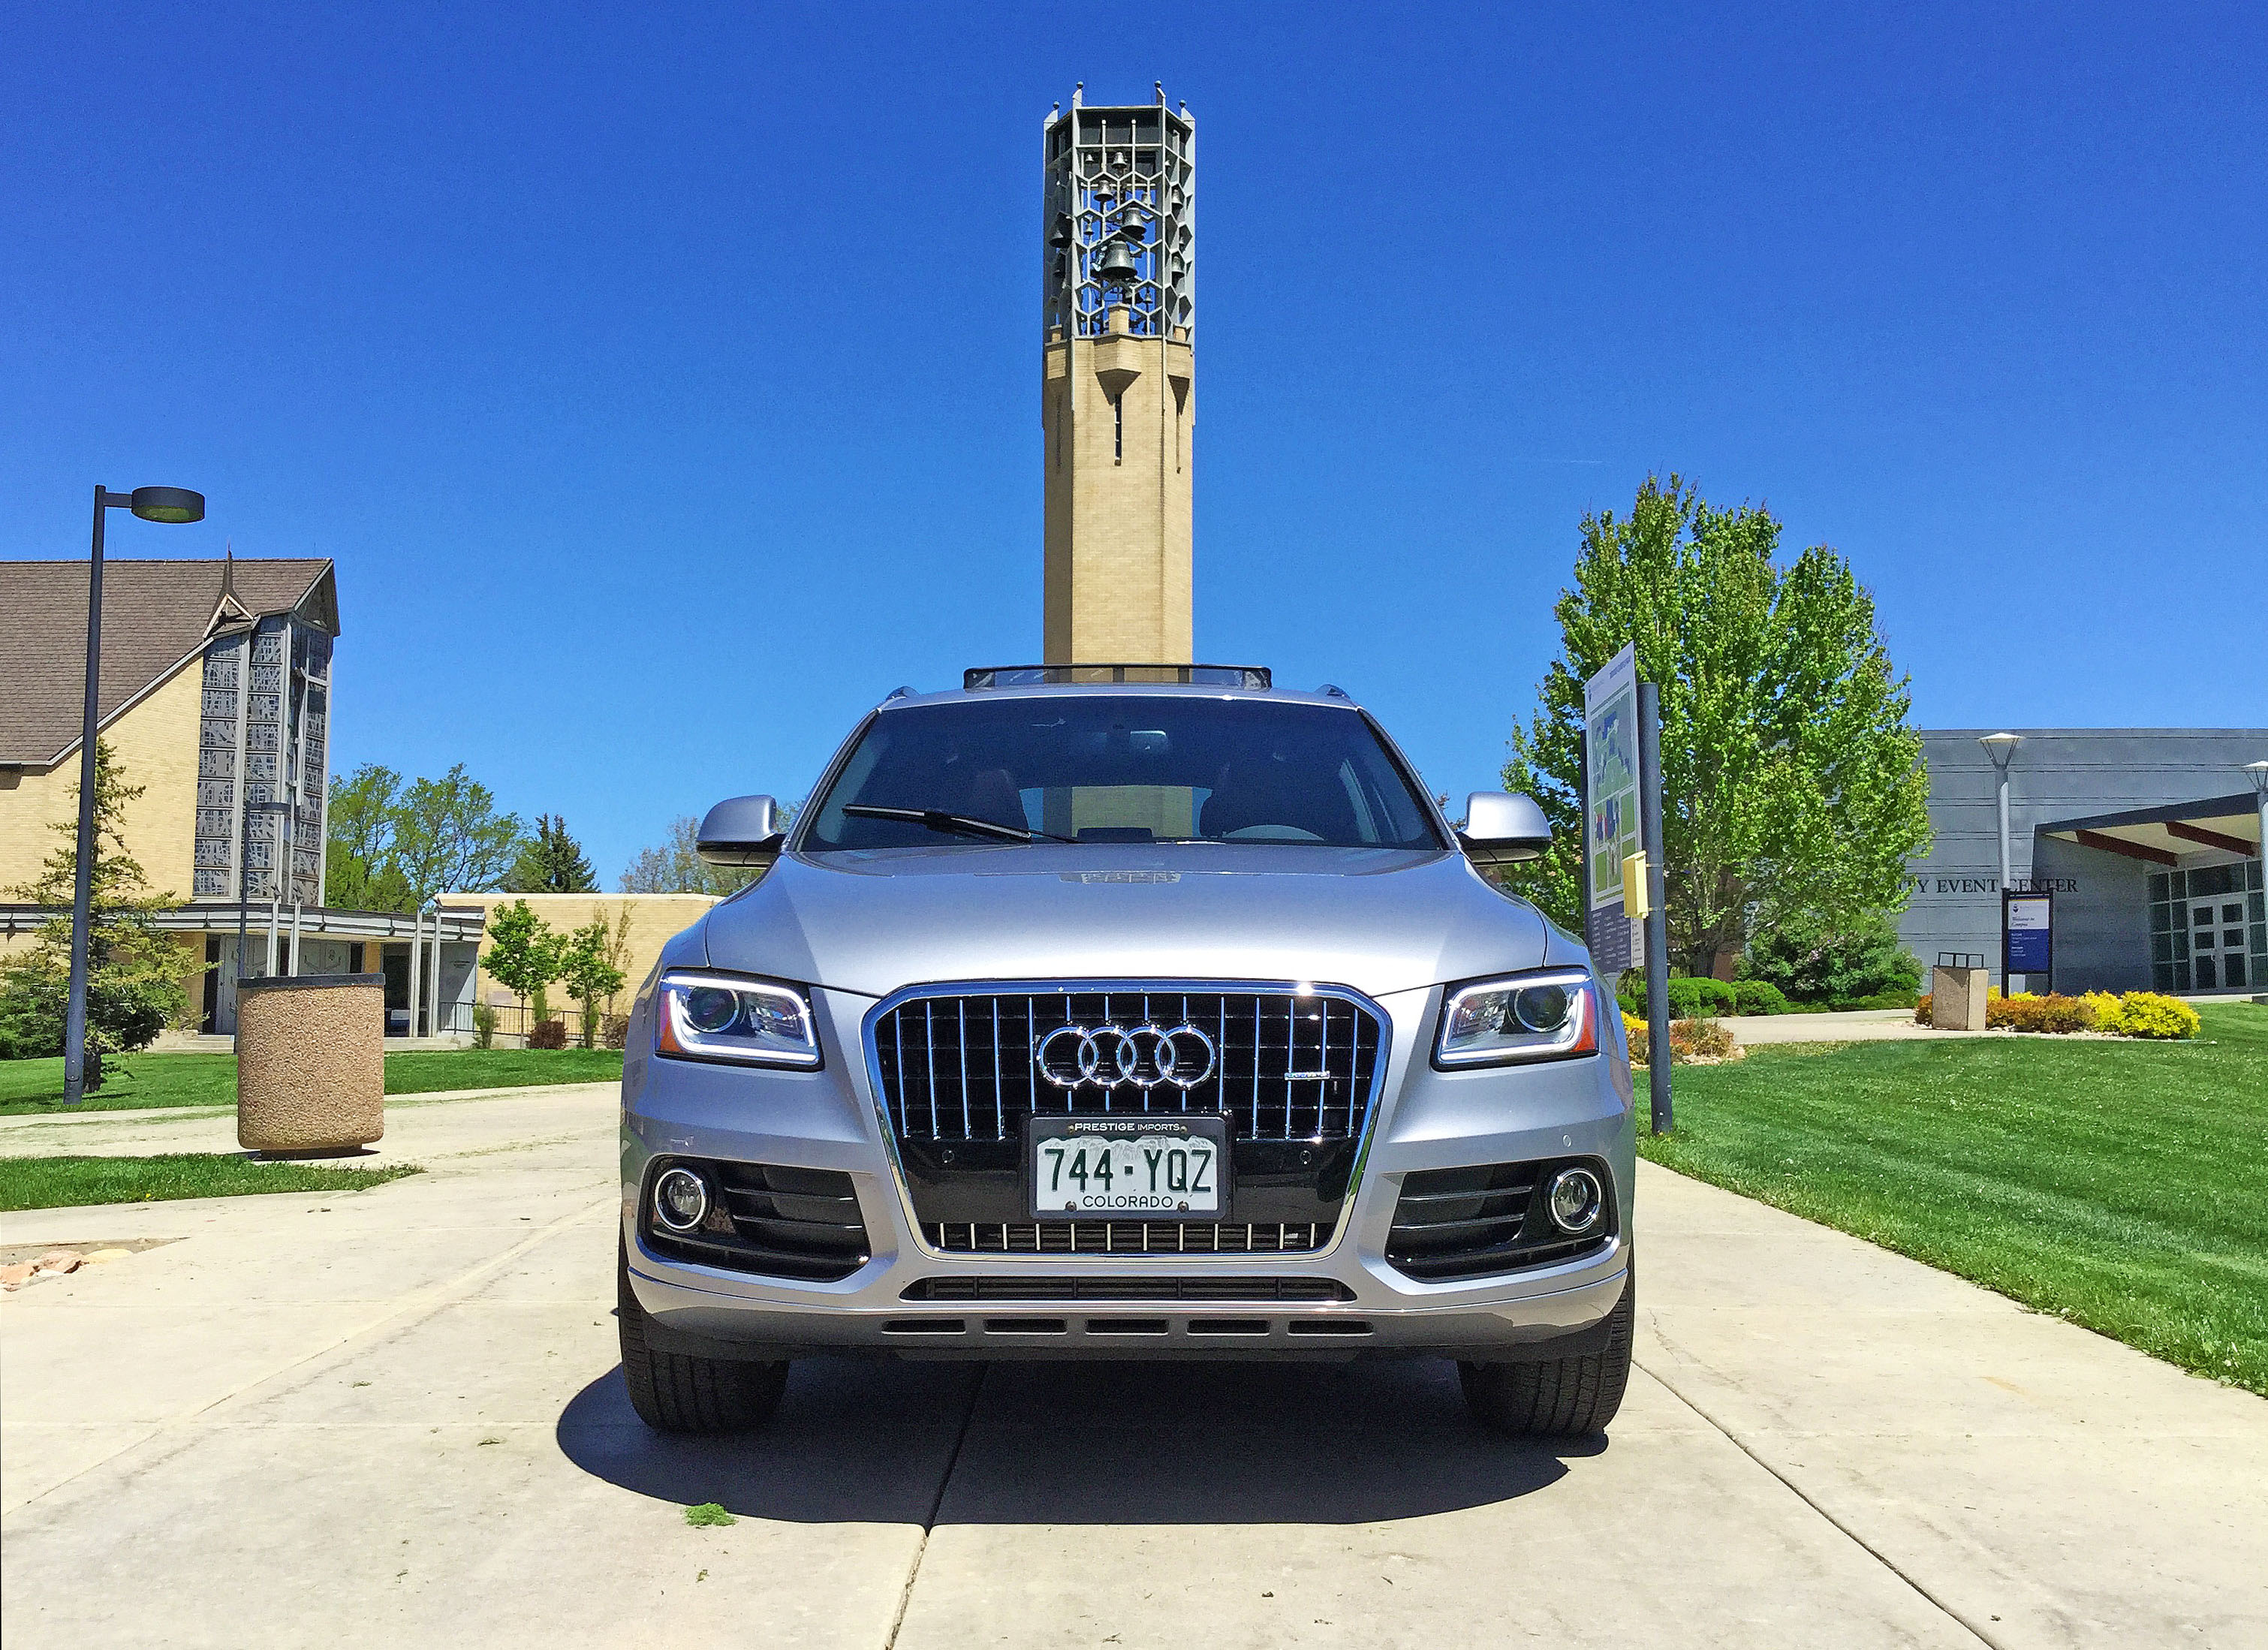 Denver s South Park Hill Neighborhood and the Audi Q5